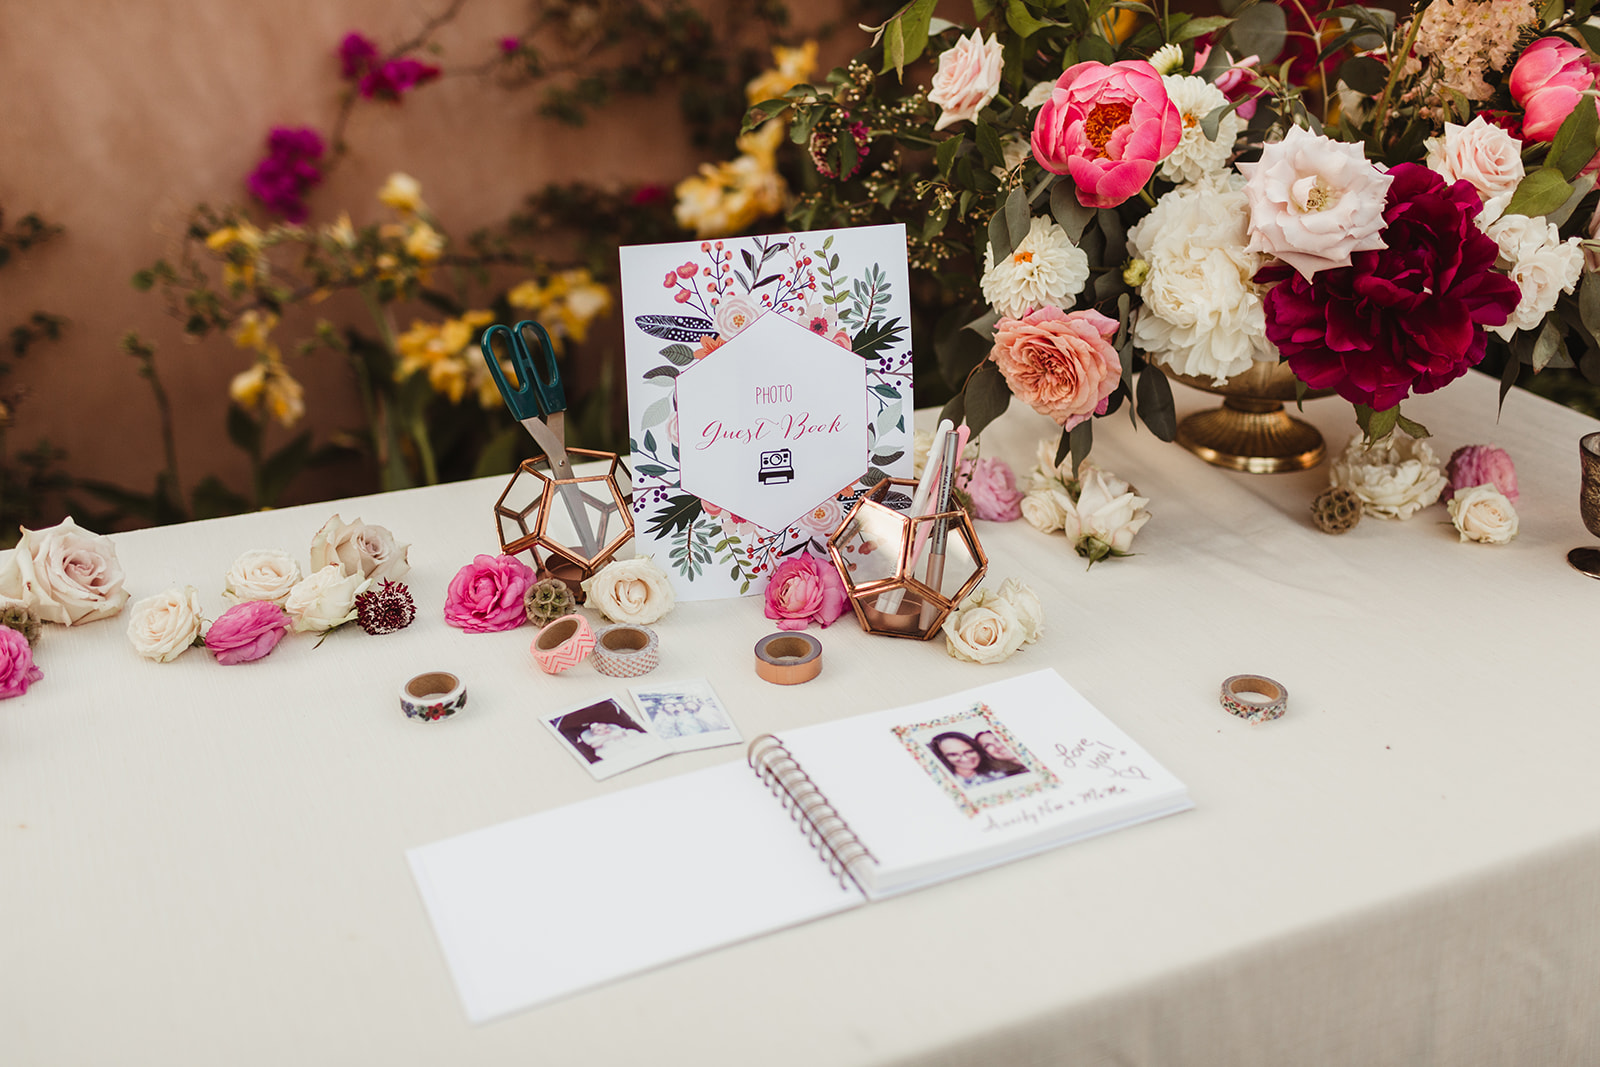 Guest Book Table Flowers.jpg